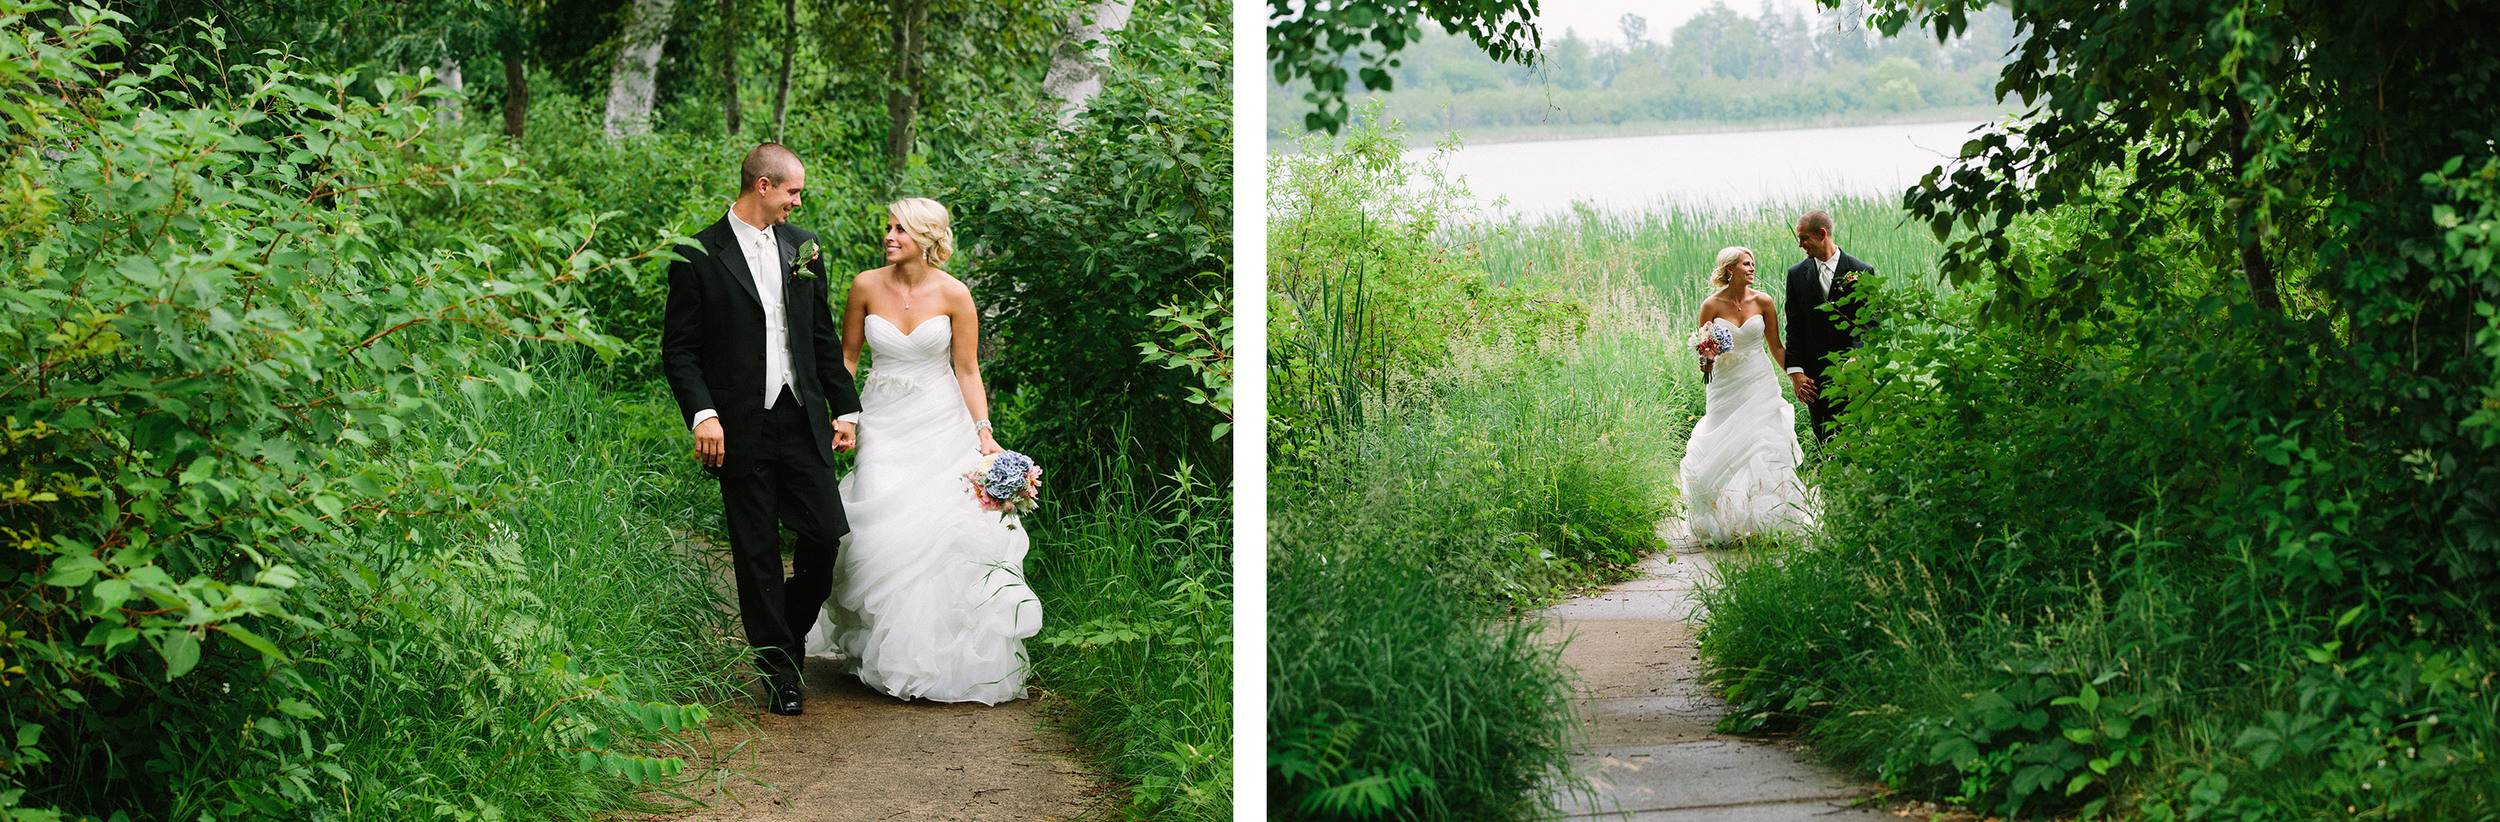 Breezy Point's Antler's Pavilion Wedding and White Birch Room Reception